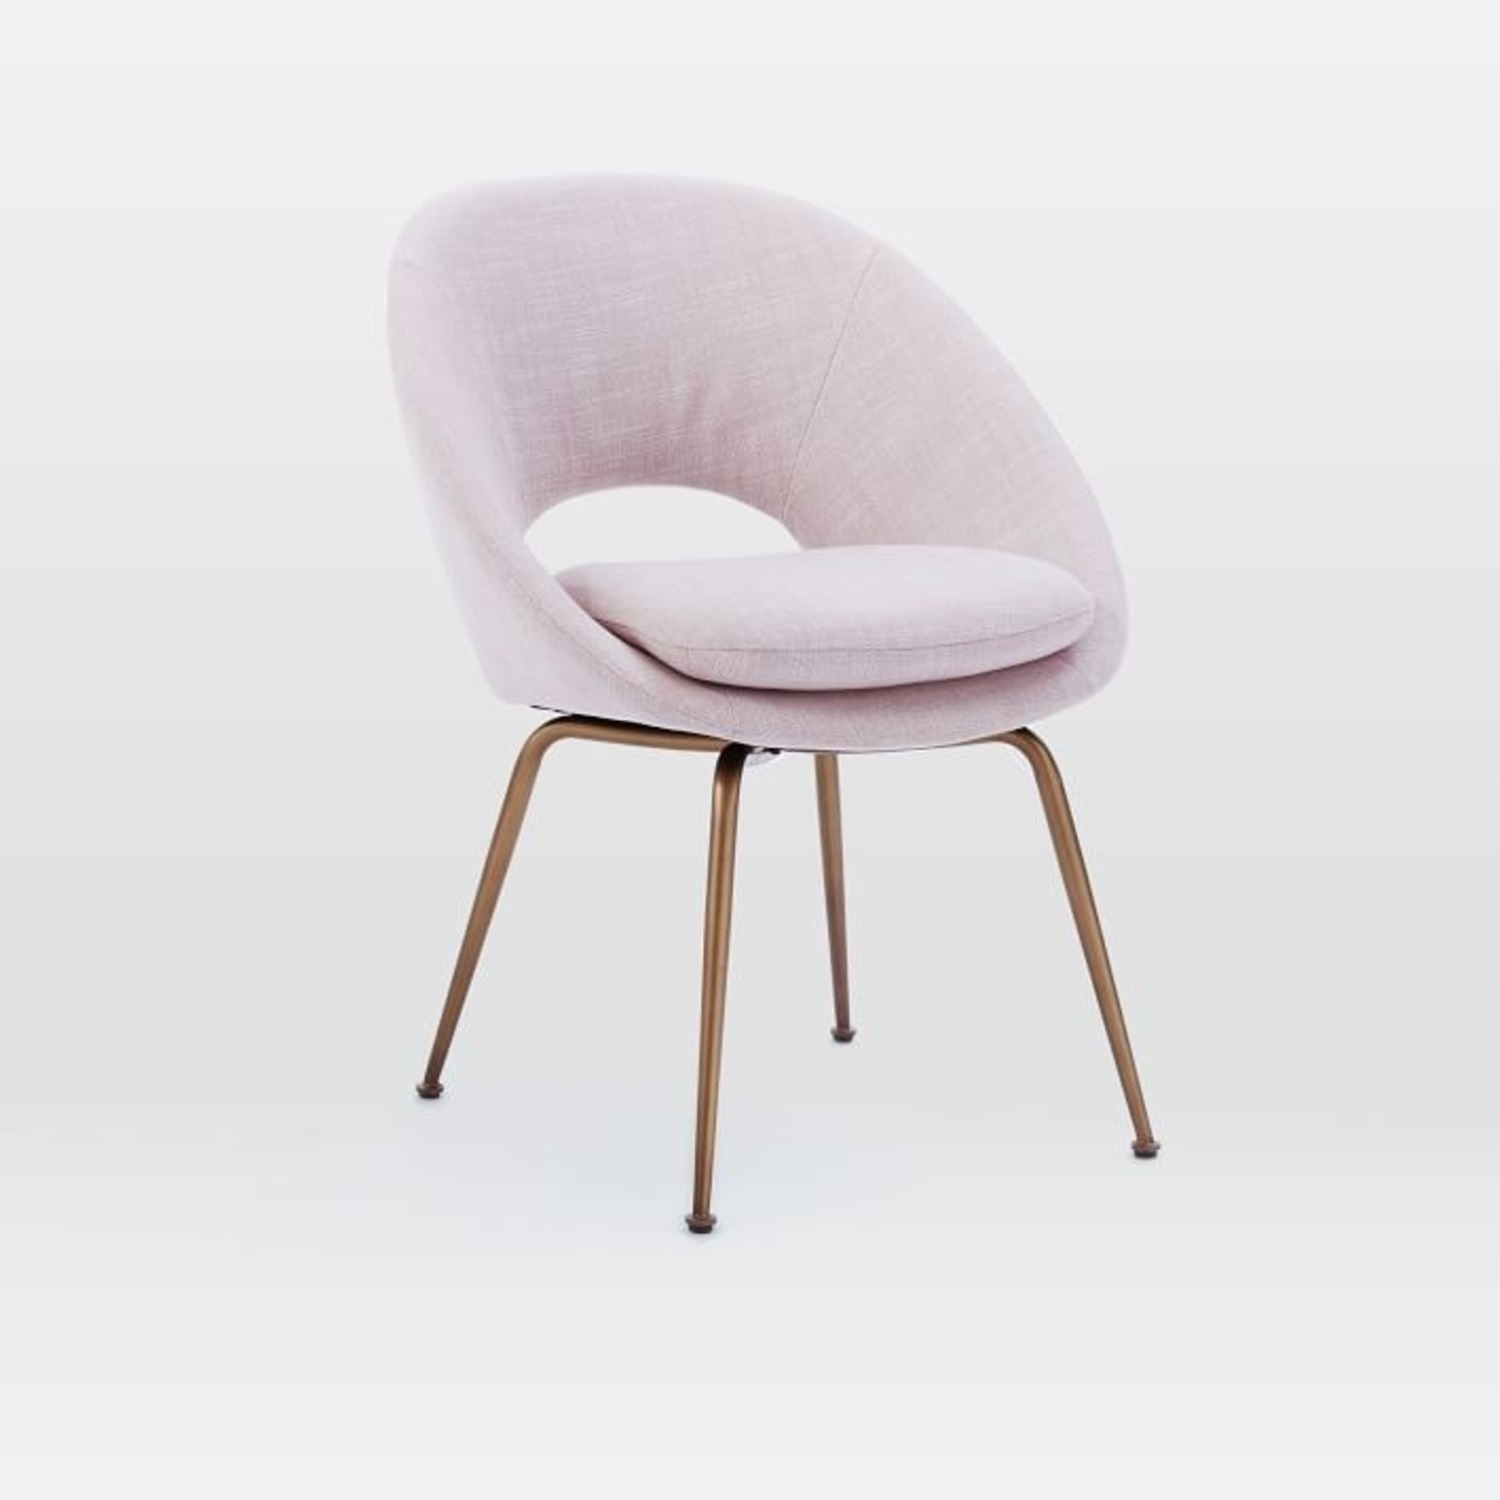 West Elm Orb Upholstered Dining Chair - image-1